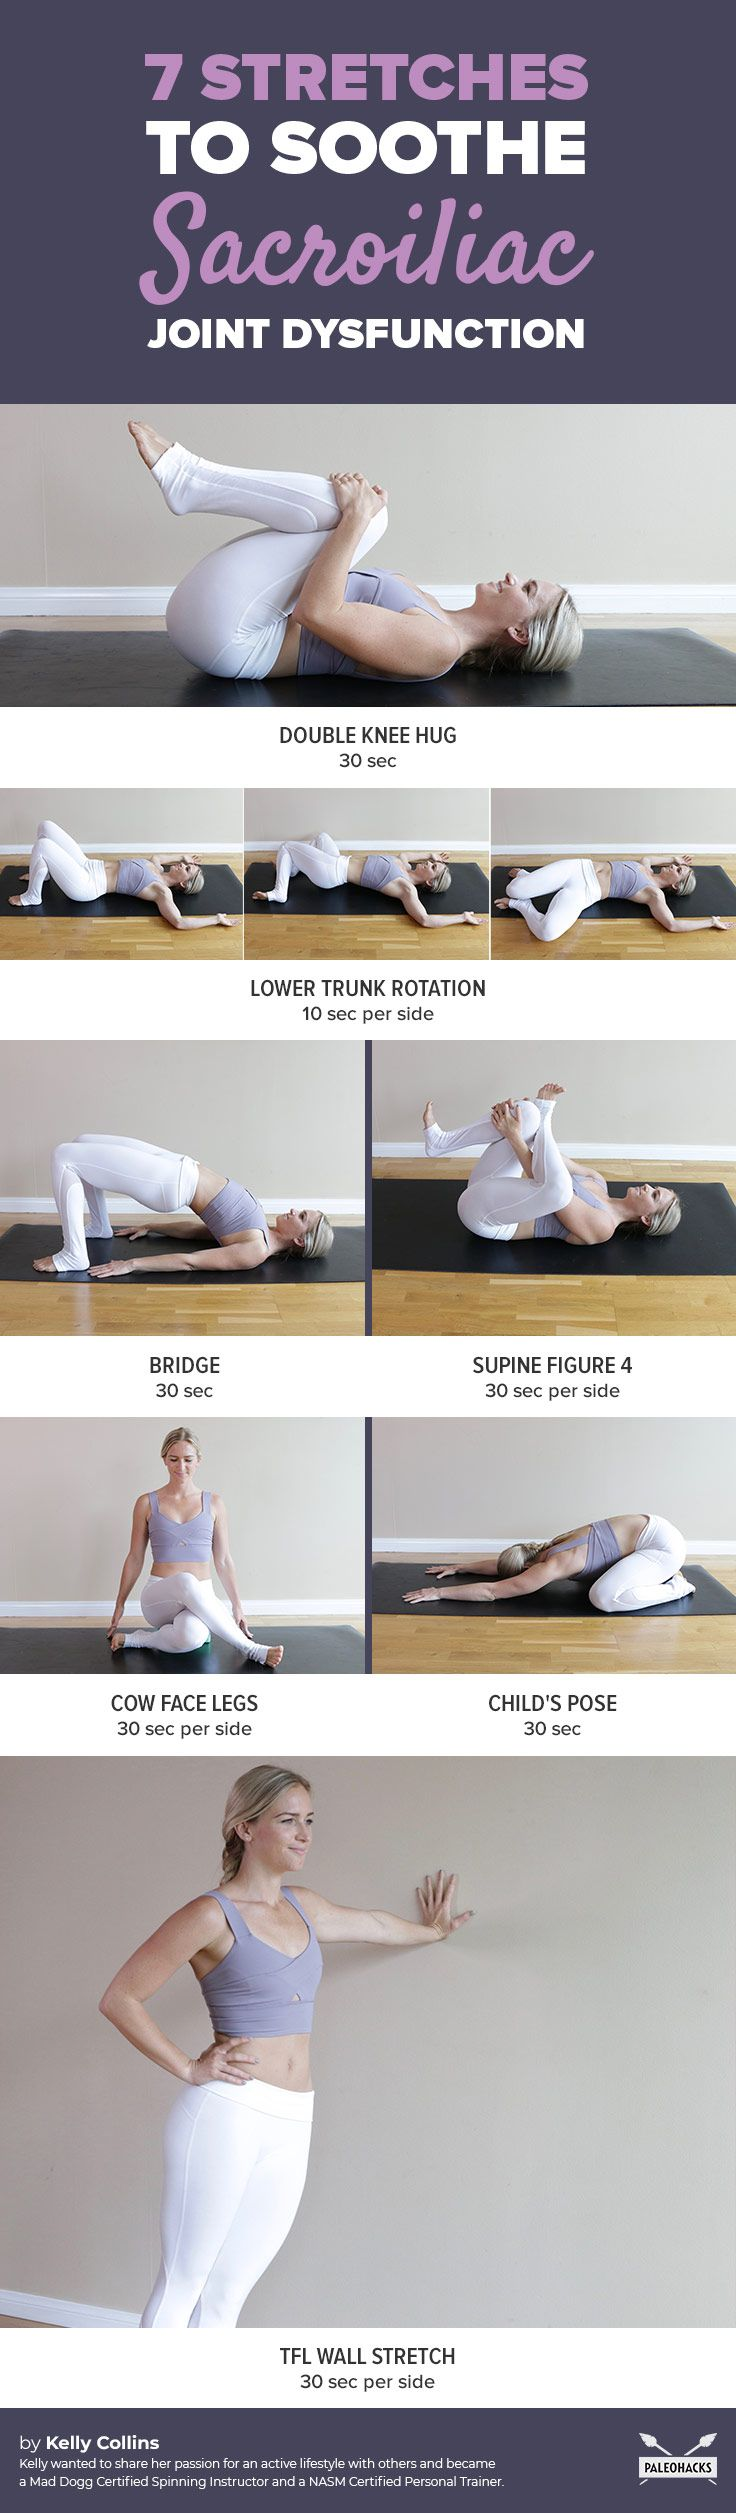 7-Stretches-to-Soothe-Sacroiliac-Joint-Dysfunction-infog.jpg